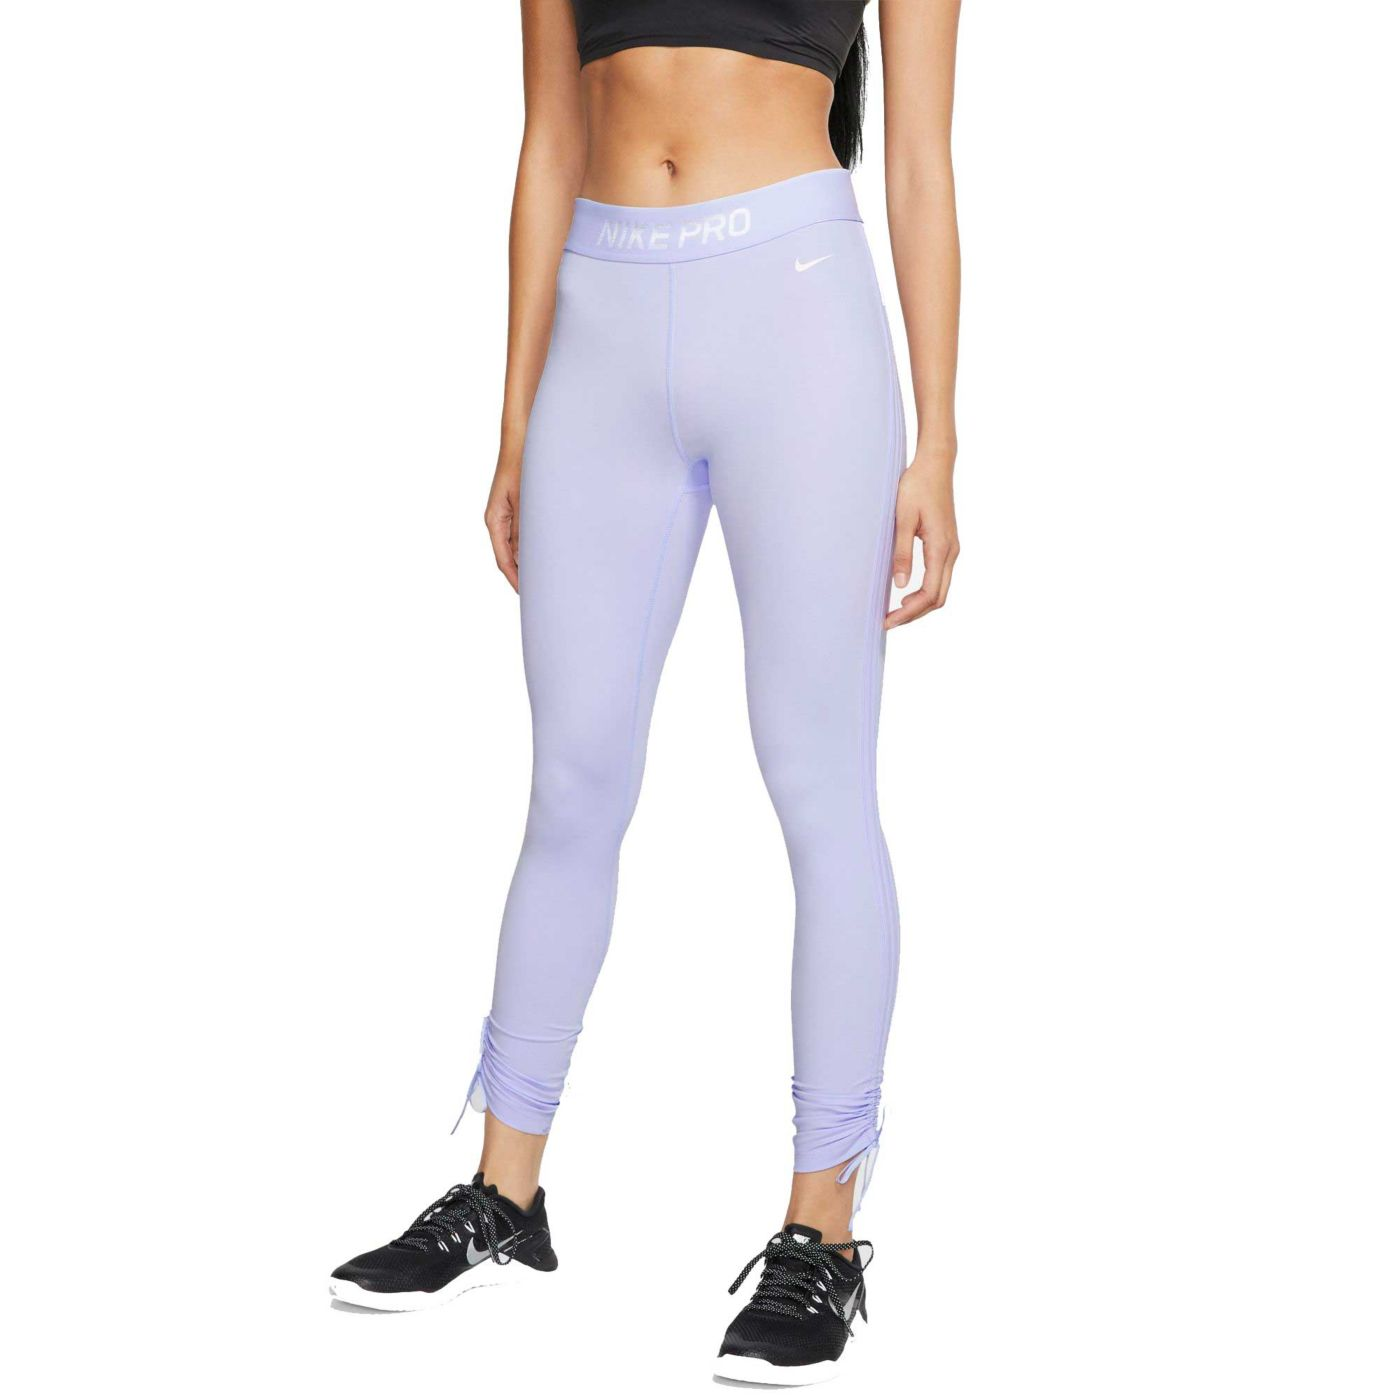 Nike Women's Pro Meta Tights